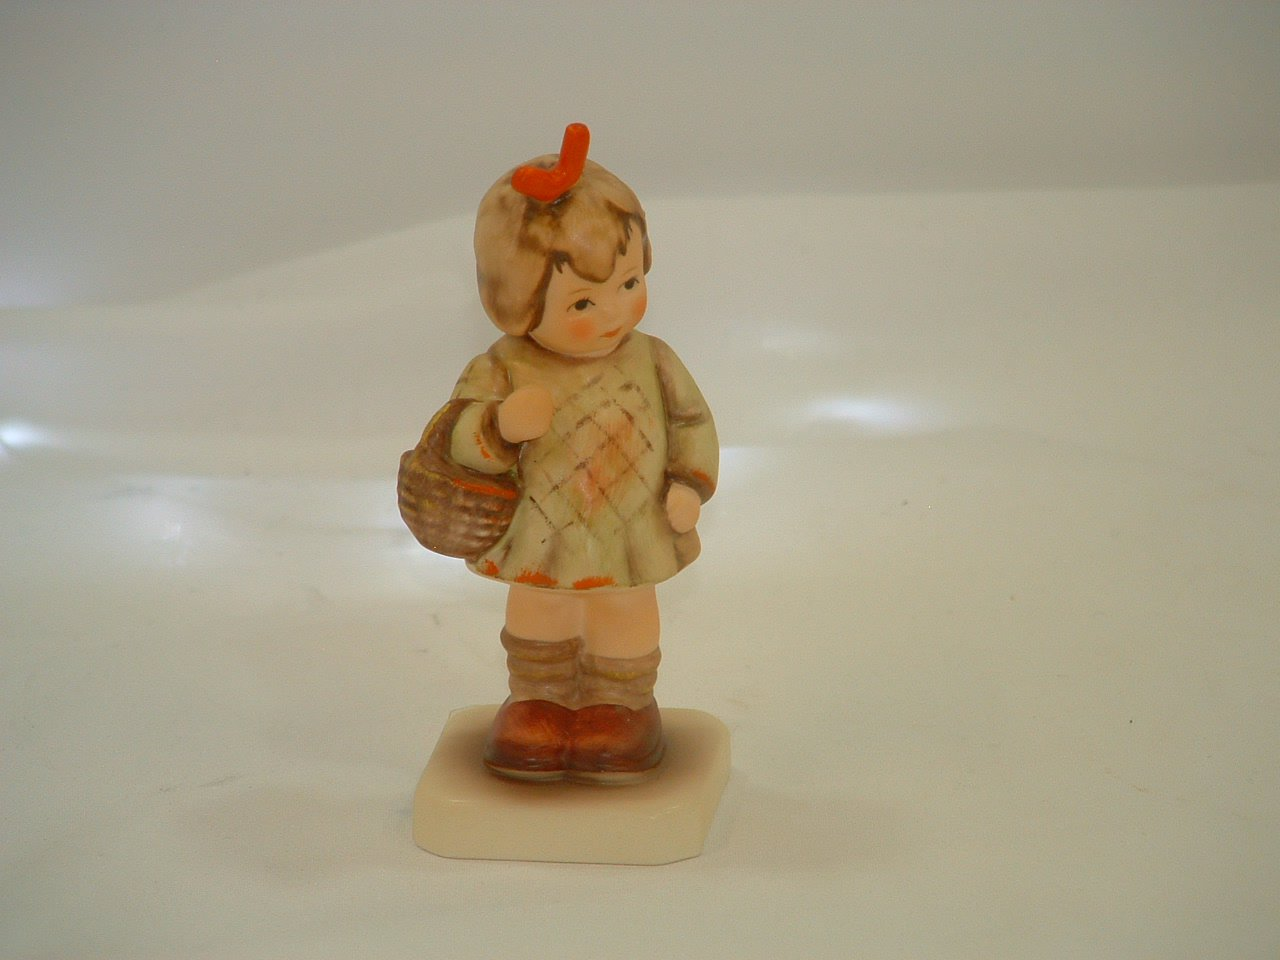 Hummel Goebel Germany I Brought You a Gift Figurine in Box